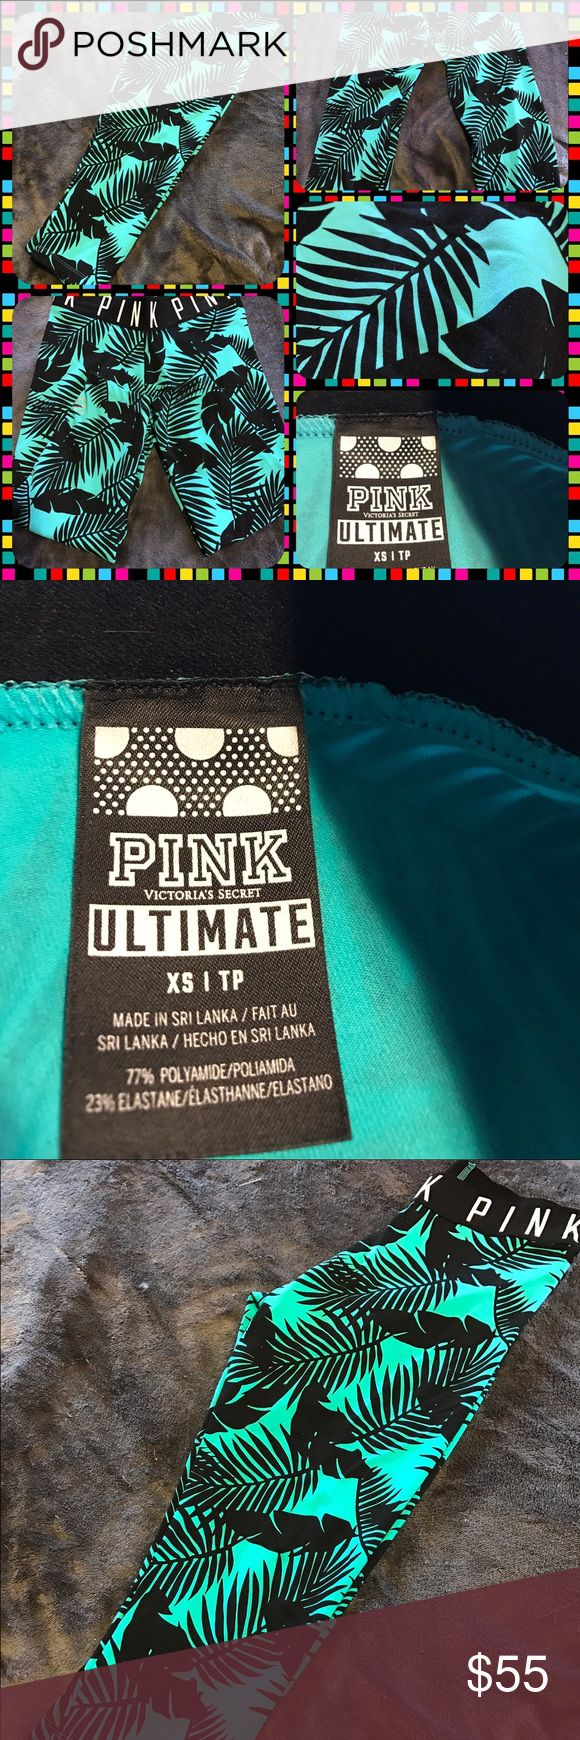 Like New PinkVictoria'sSecret Ultimate Capri Pants Like new Pink Victoria's Secret Ultimate Capri pants.  Turquoise pants with black palm leaf design.  Size Extra small.  PINK is in white letters around the waistband.  No trades.  Will price drop. PINK Victoria's Secret Pants Capris